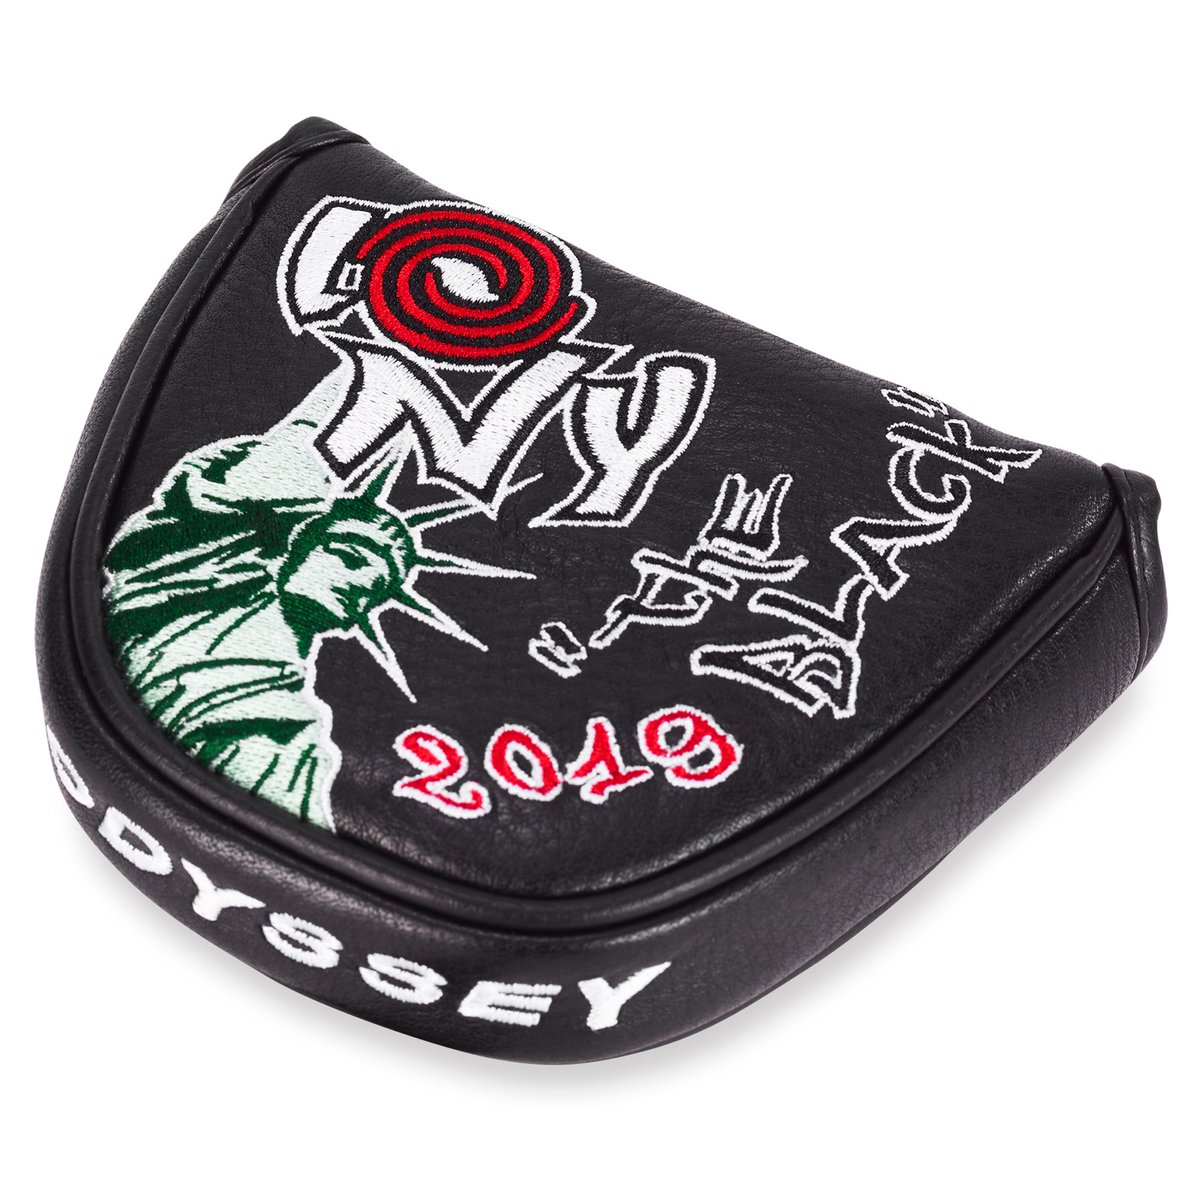 78a894fc38ff ... will be available for purchase at http   odysseygolf.com . These are  the same headcovers Odyssey staffers will use next week.pic.twitter .com 0ghO0GELcR